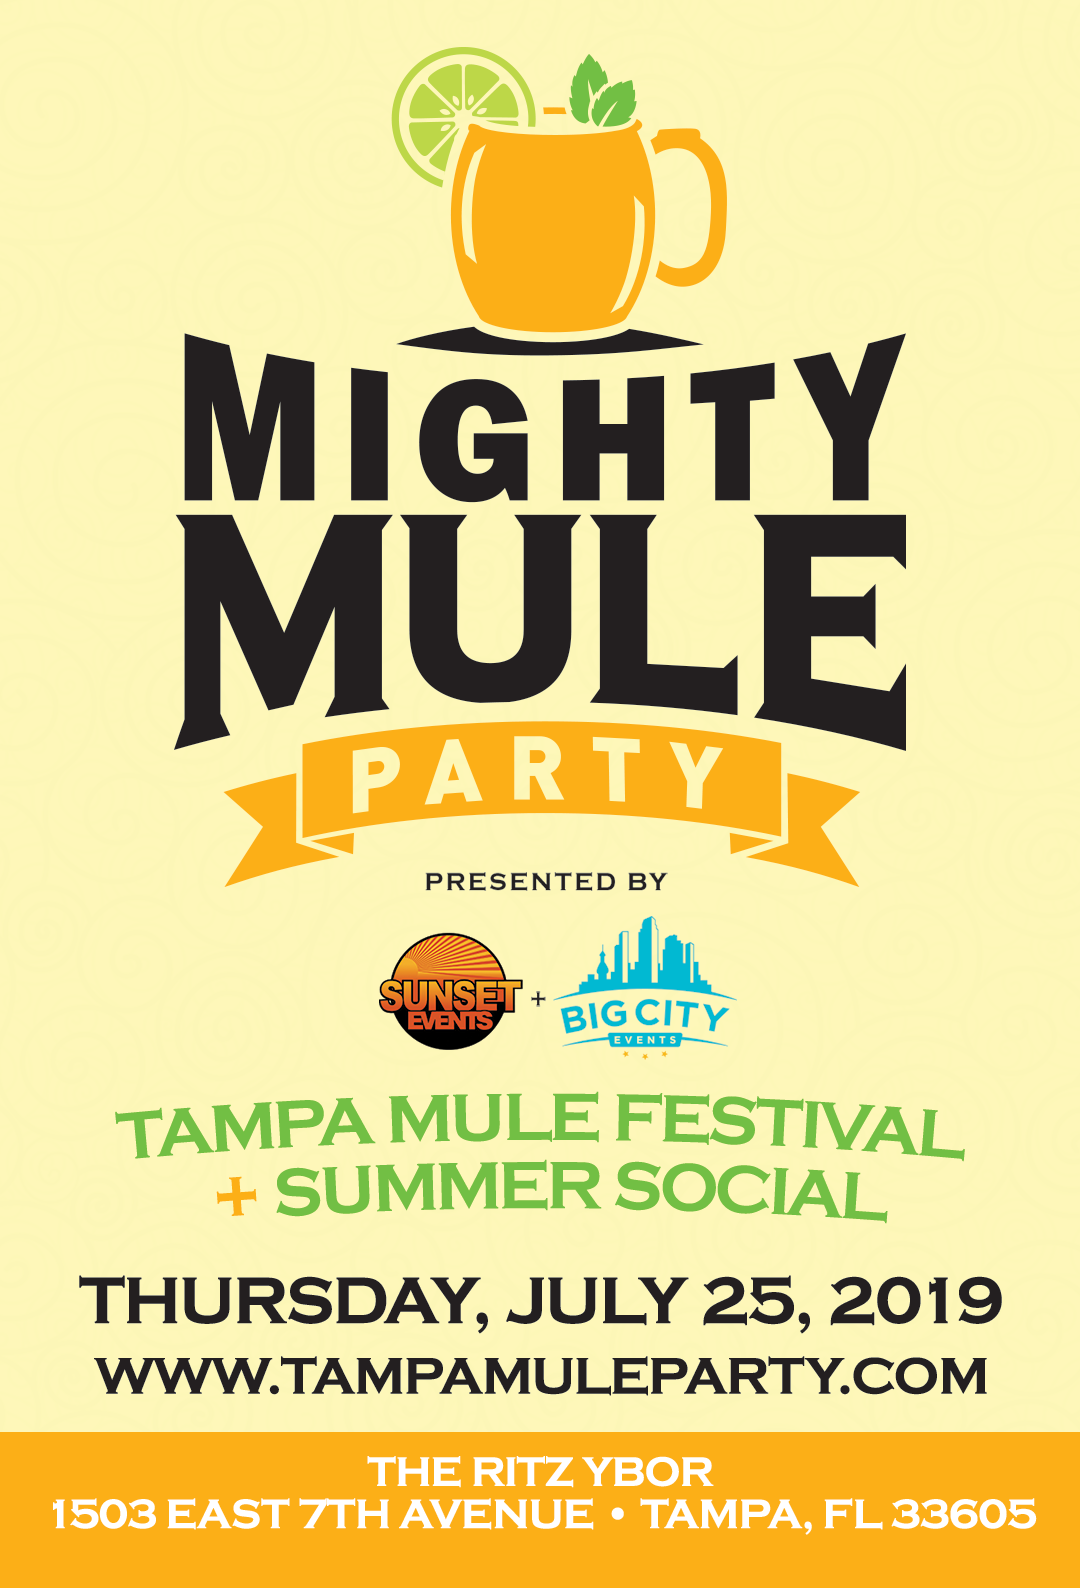 The Mighty Mule Party: Tampa Mule Festival + Summer Social at The RITZ Ybor – 7/25/2019